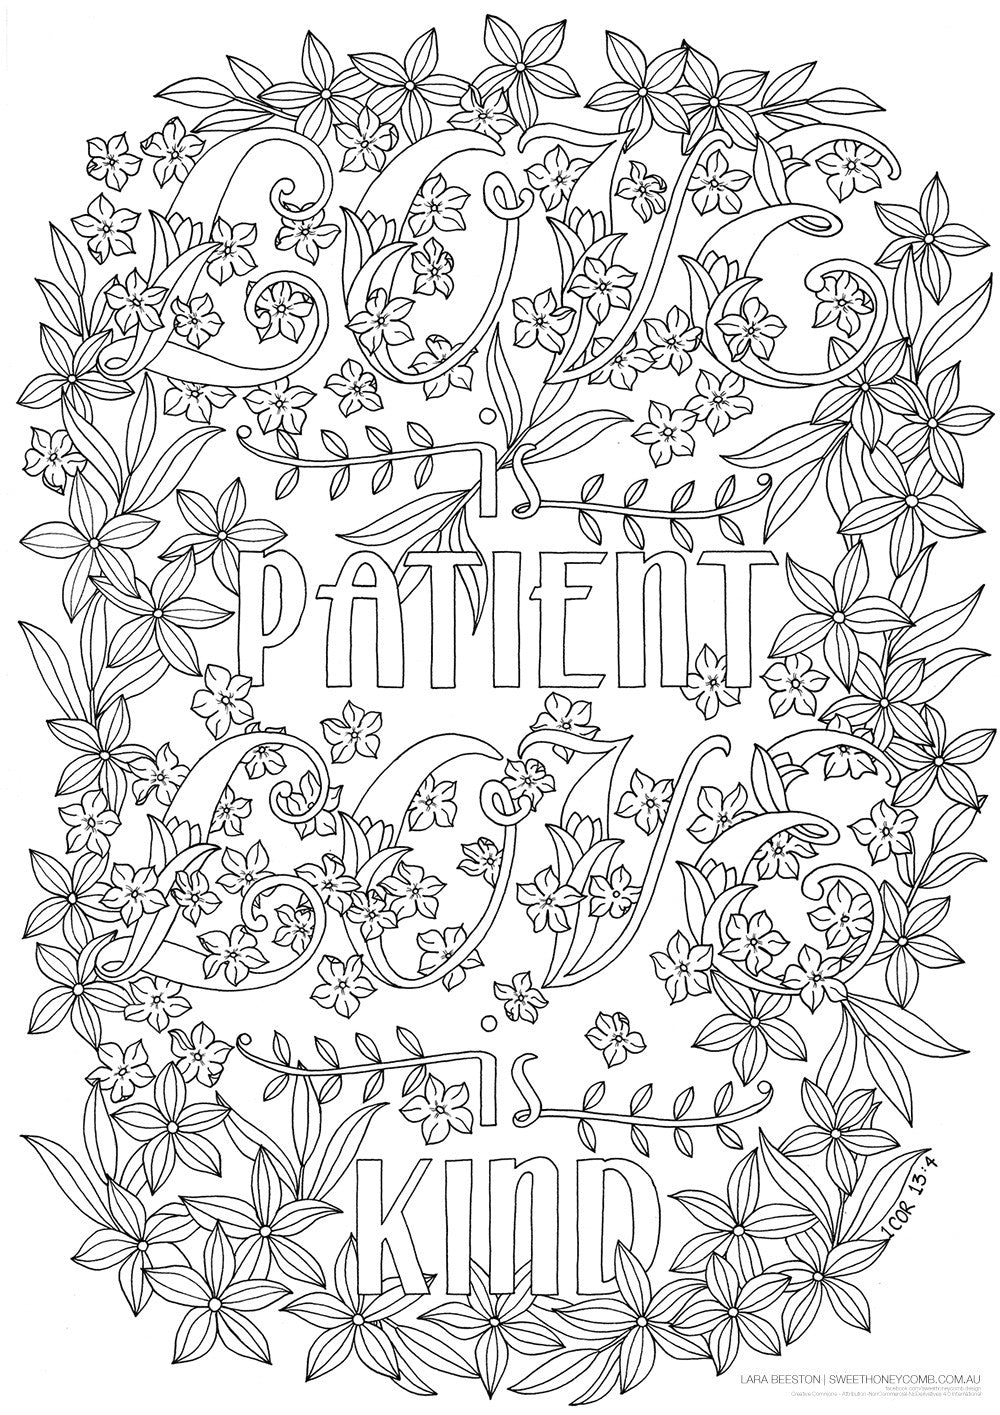 Colouring In Page | 1 Corinthians 13 - Love is Patient, Love is Kind - Sweet Honeycomb - 1